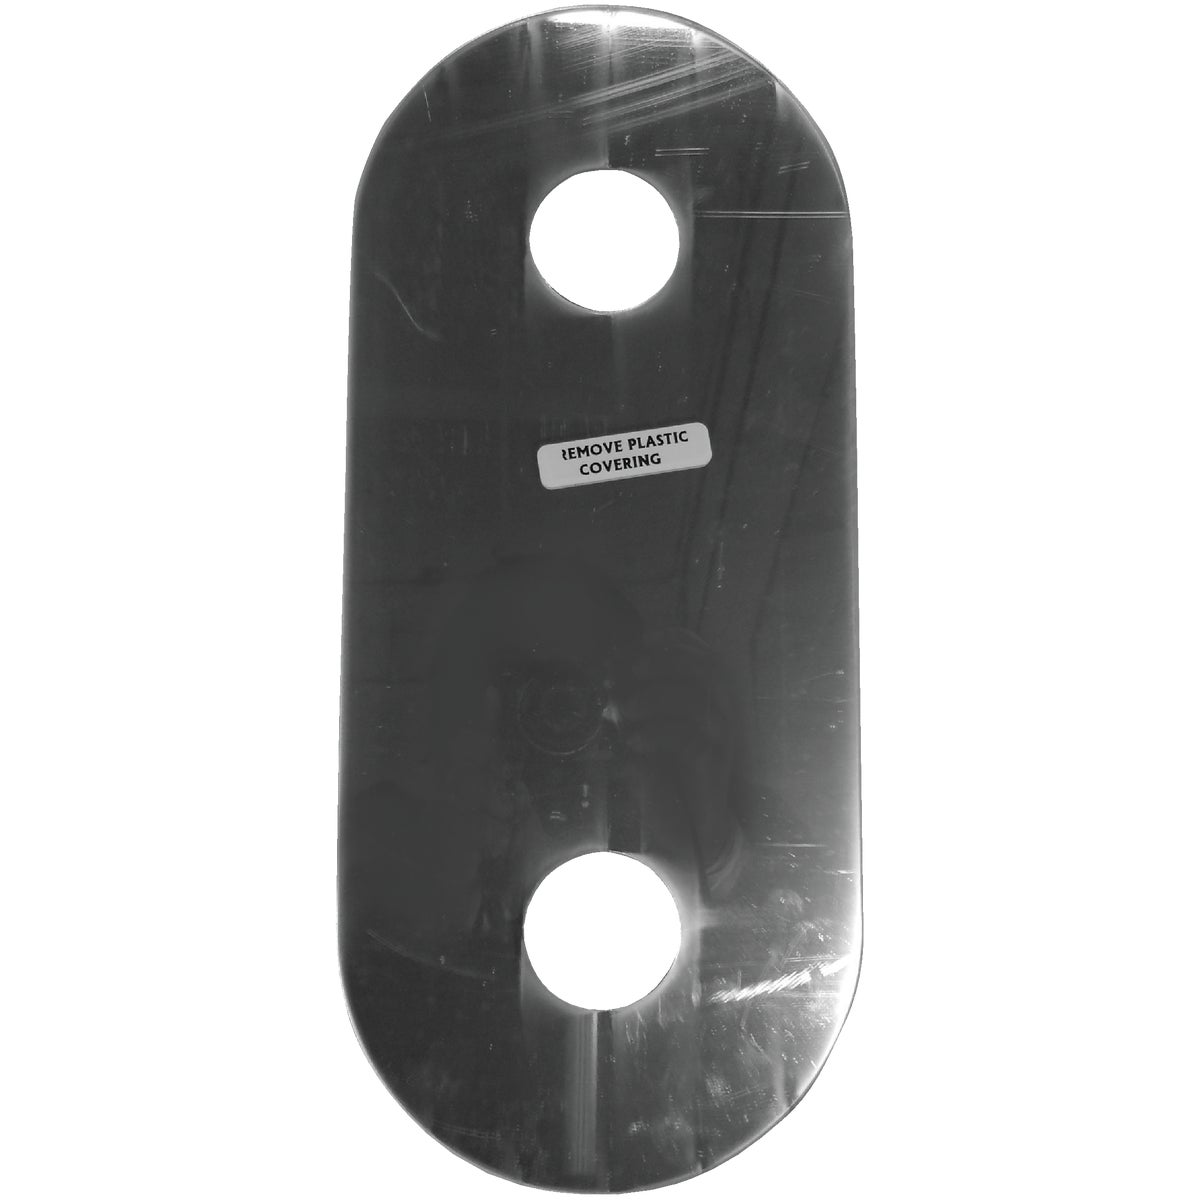 2-HANDLE COVER-UP PLATE - CU-200 by P P P Mfg